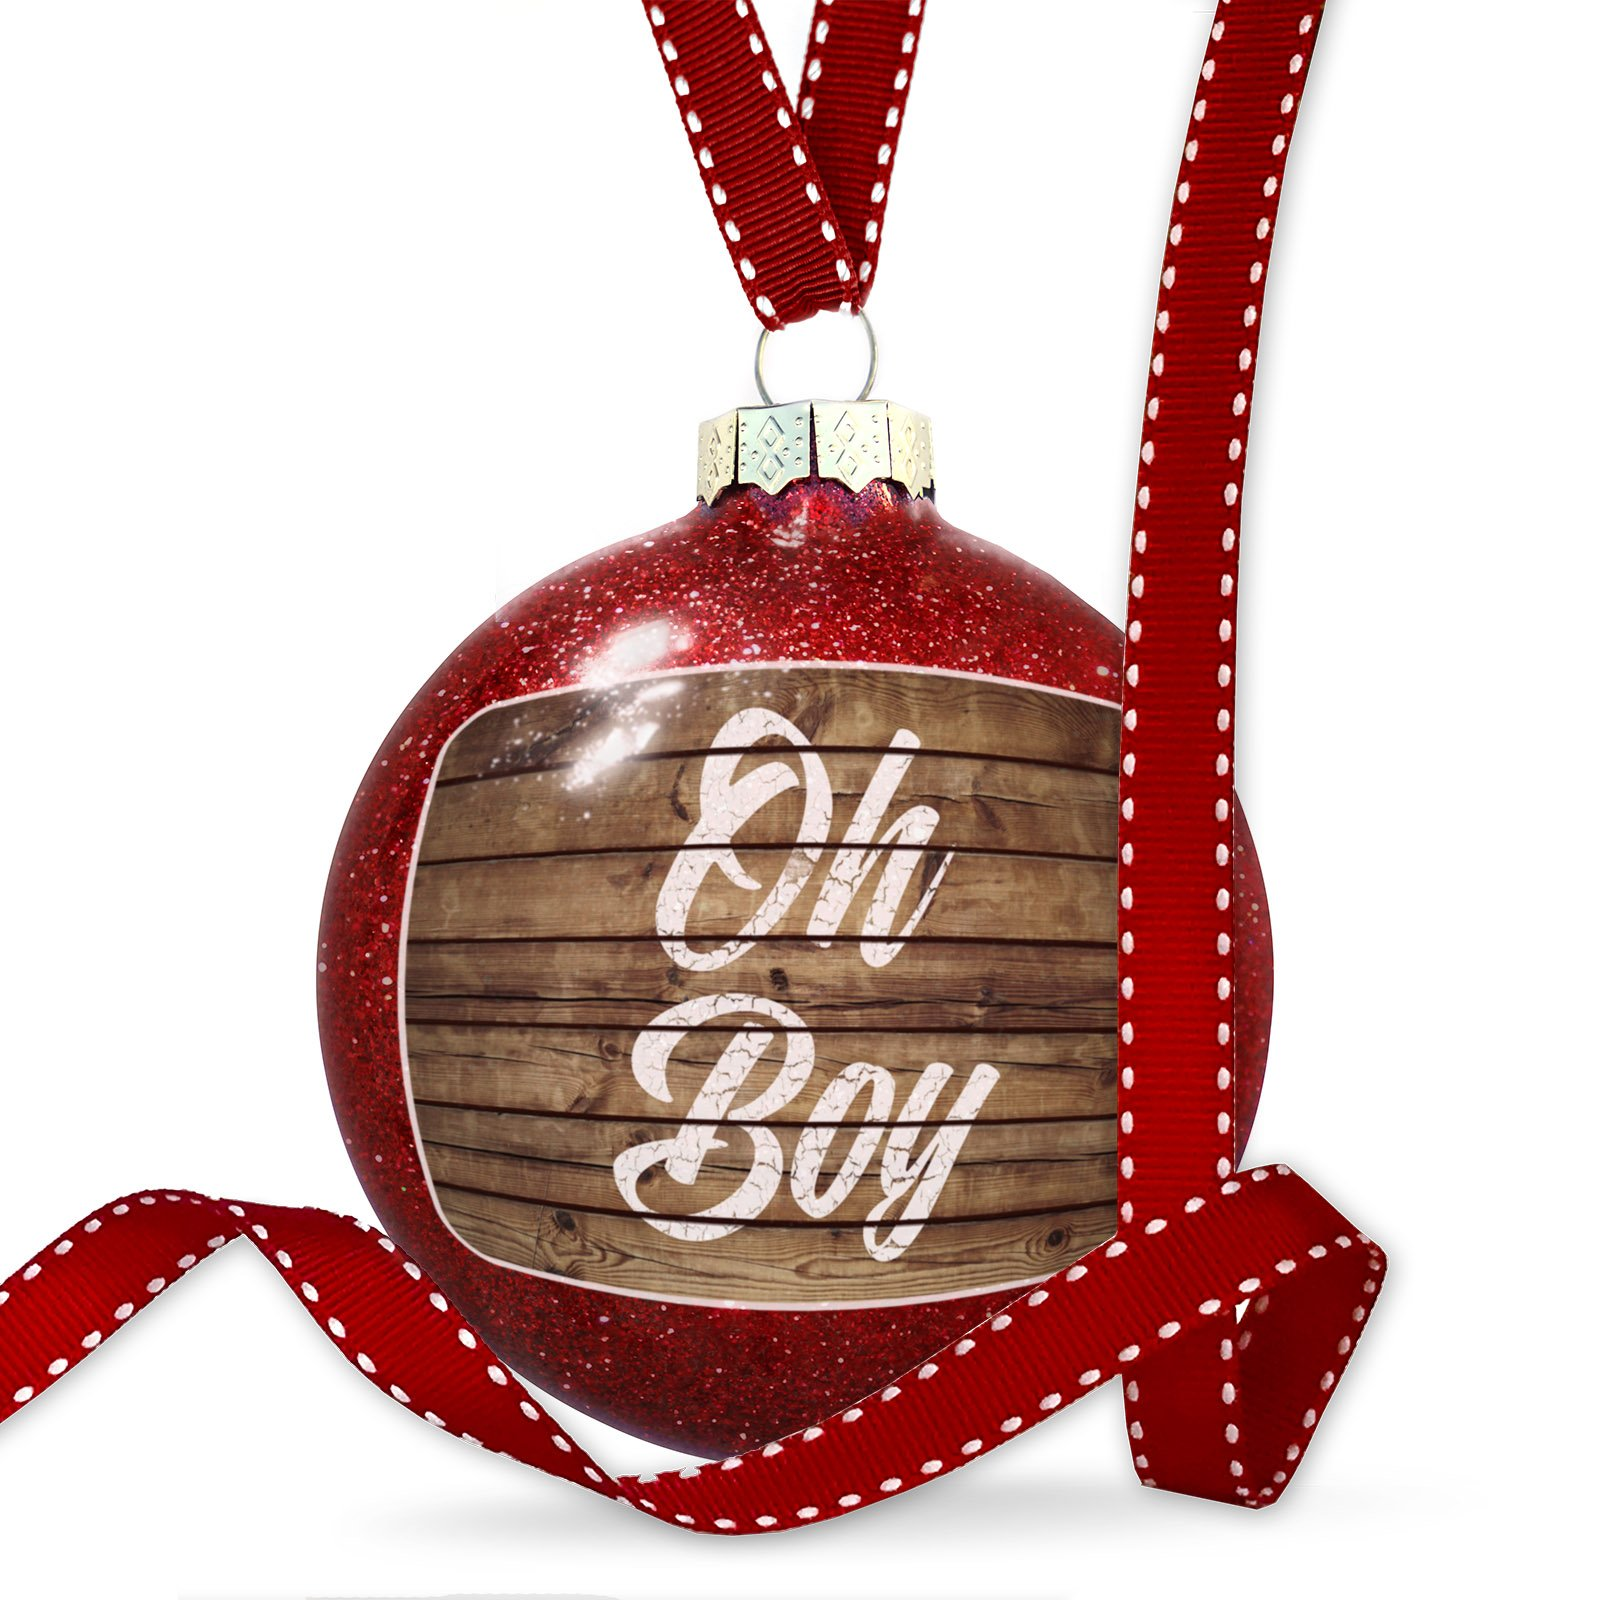 Christmas Decoration Painted Wood Oh Boy Ornament